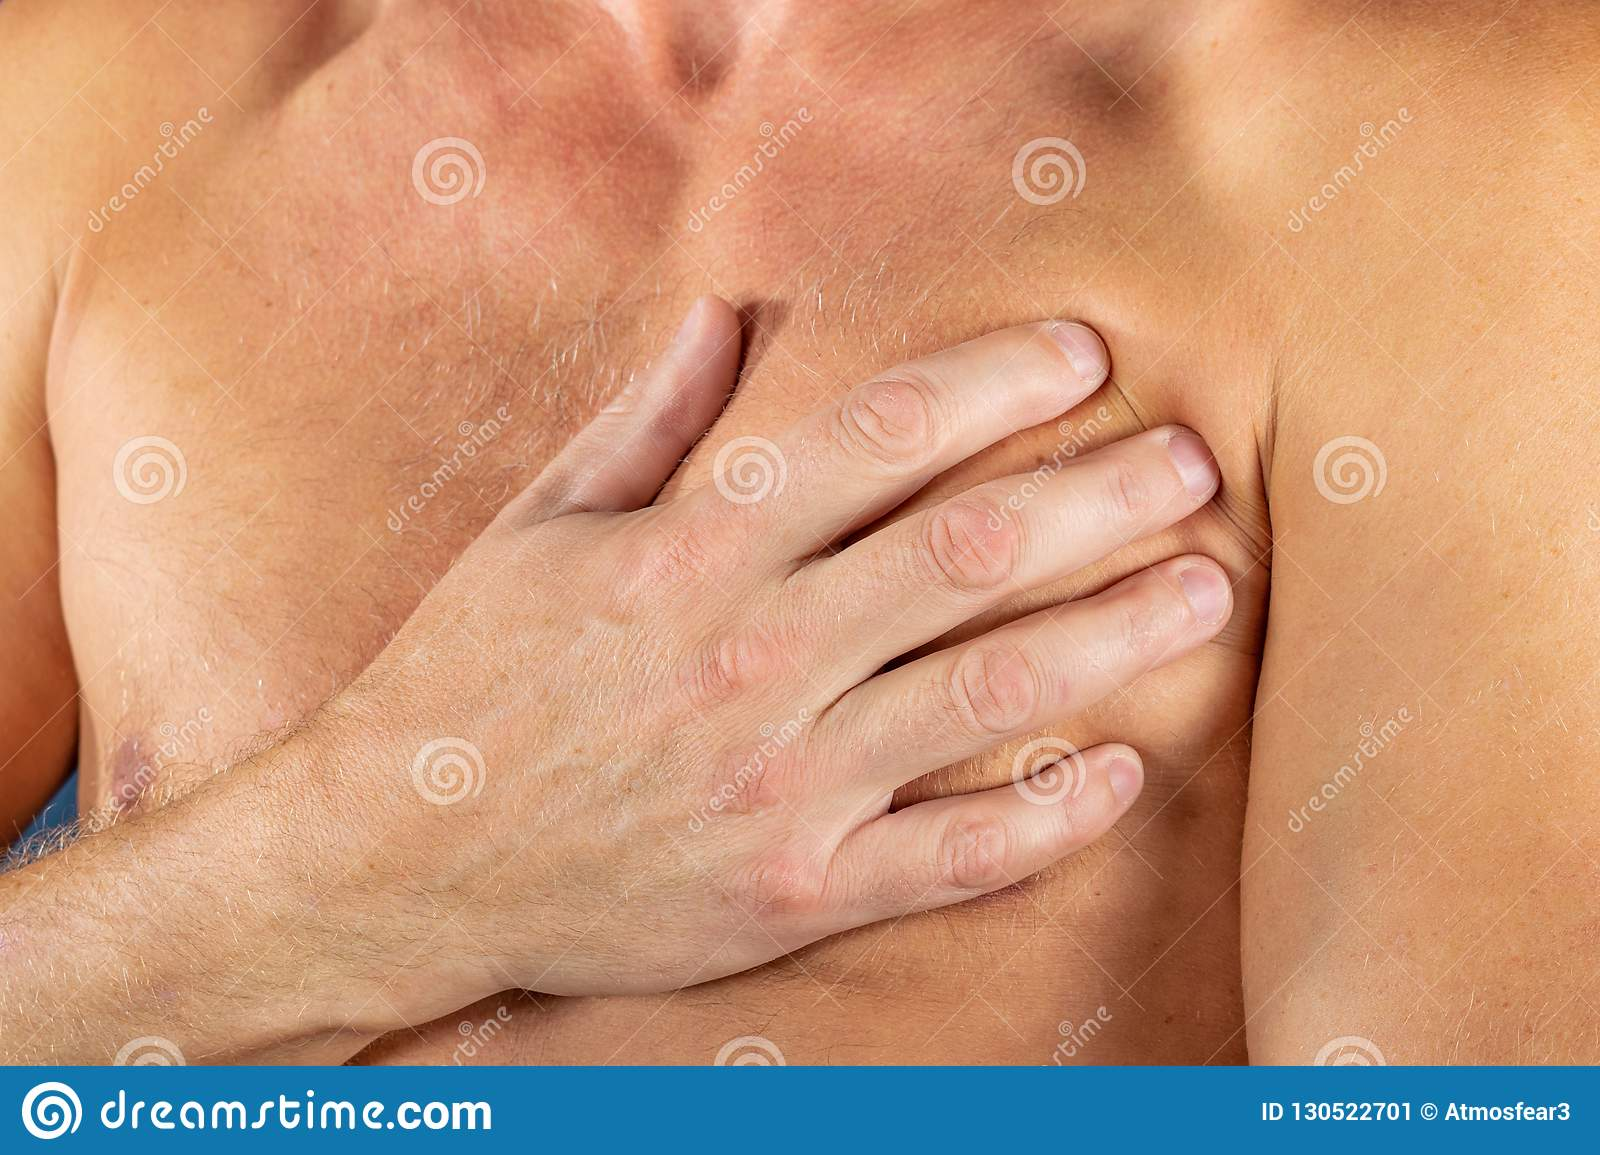 Man suffering from chest pain, having heart attack or painful cramps, pressing on chest with painful expression on blue backgound.